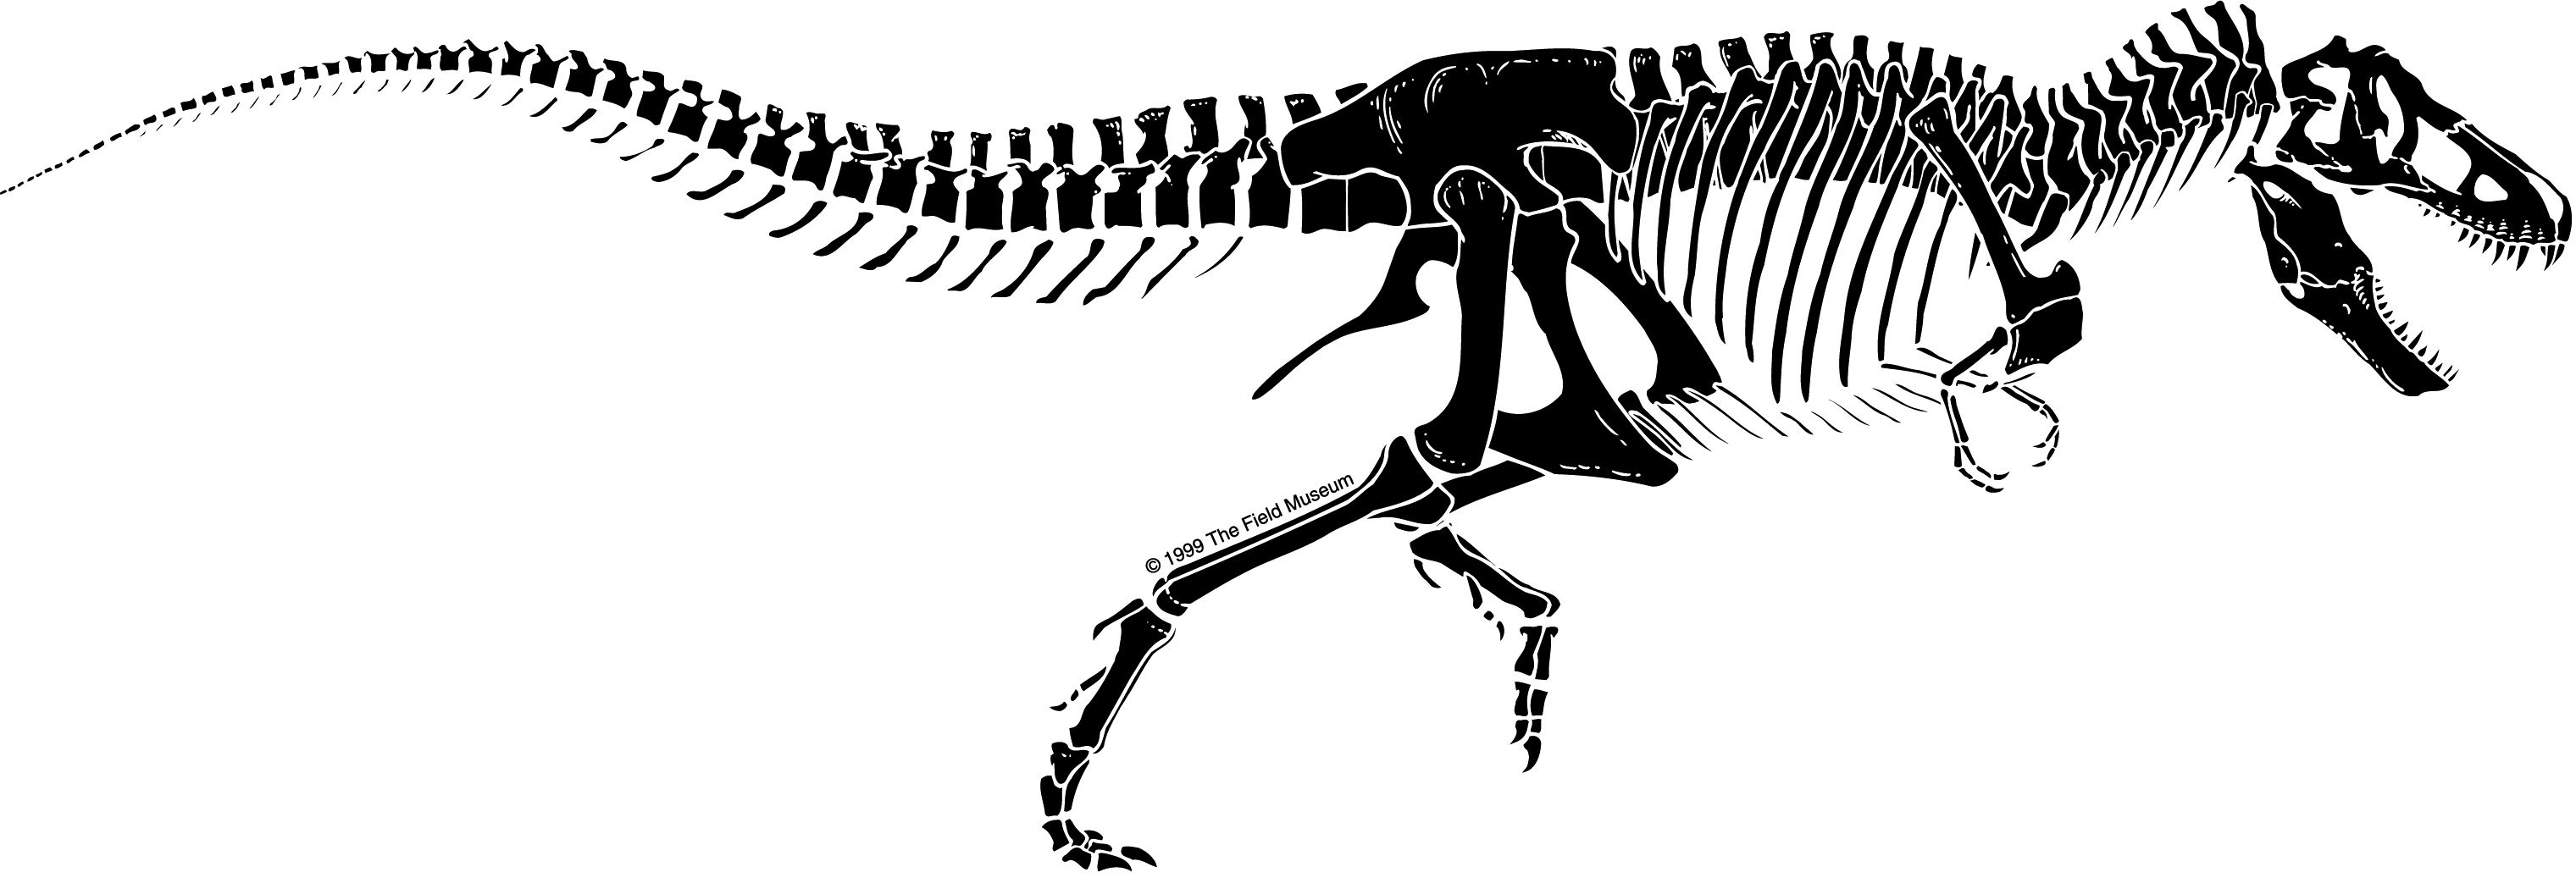 t rex outline drawing pin by sarah lamb on create art outline drawing rex t